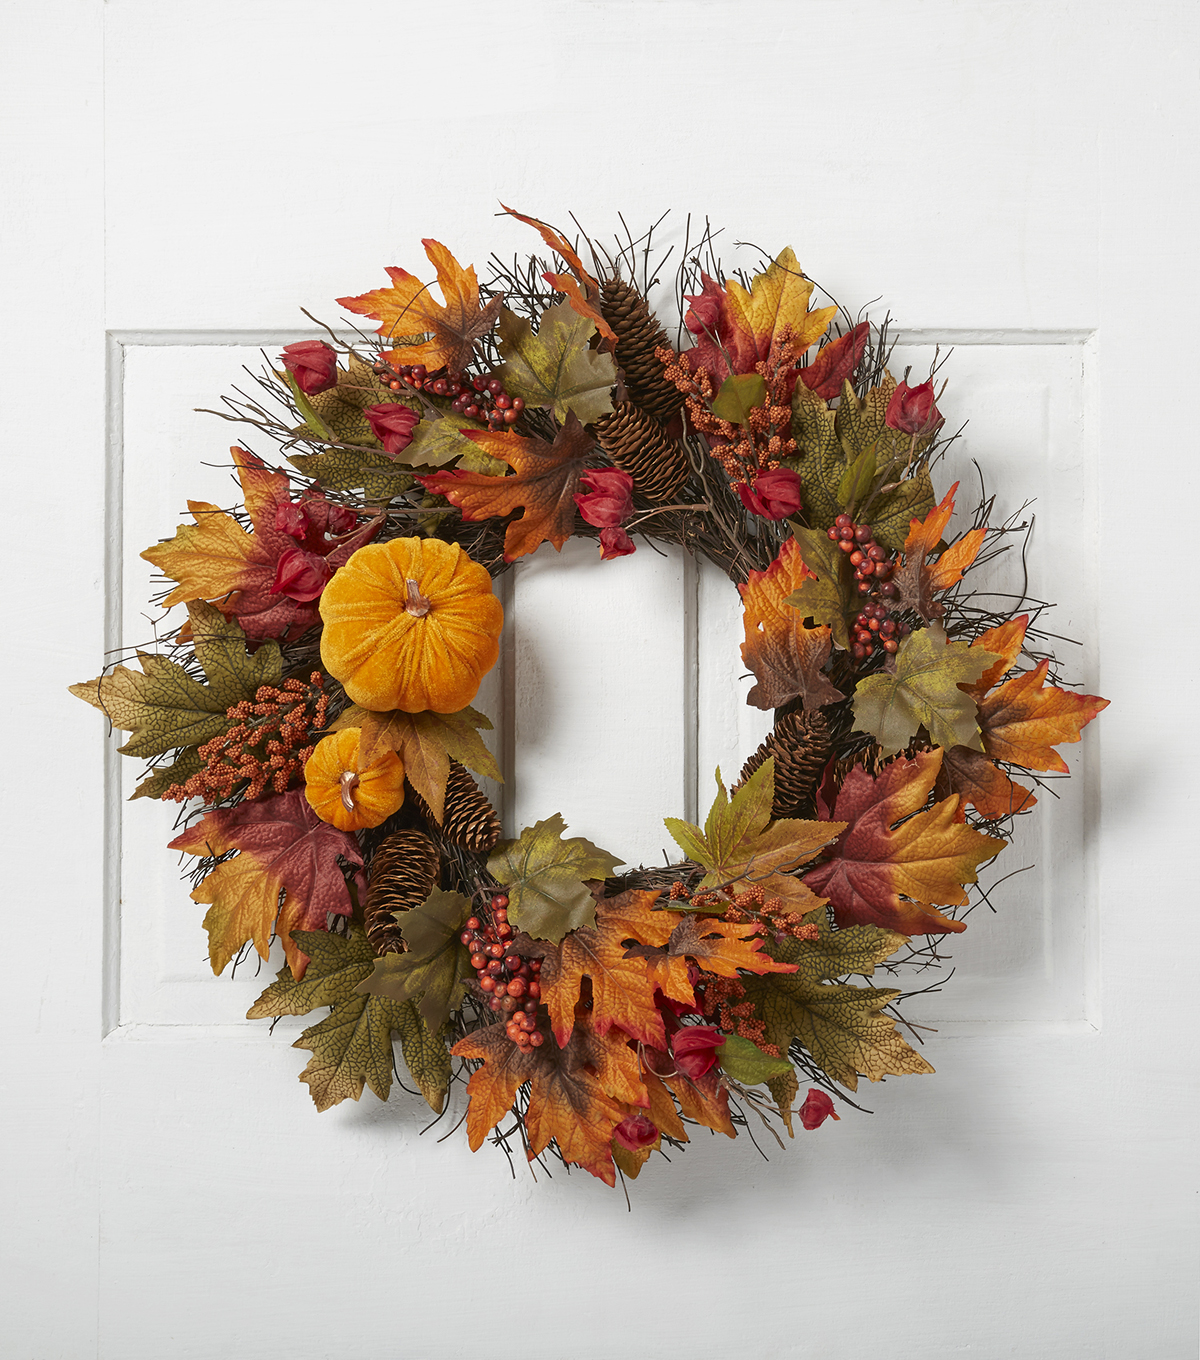 Blooming Autumn Pumpkin Lantern Berry Pinecone Wreath-Orange & Red